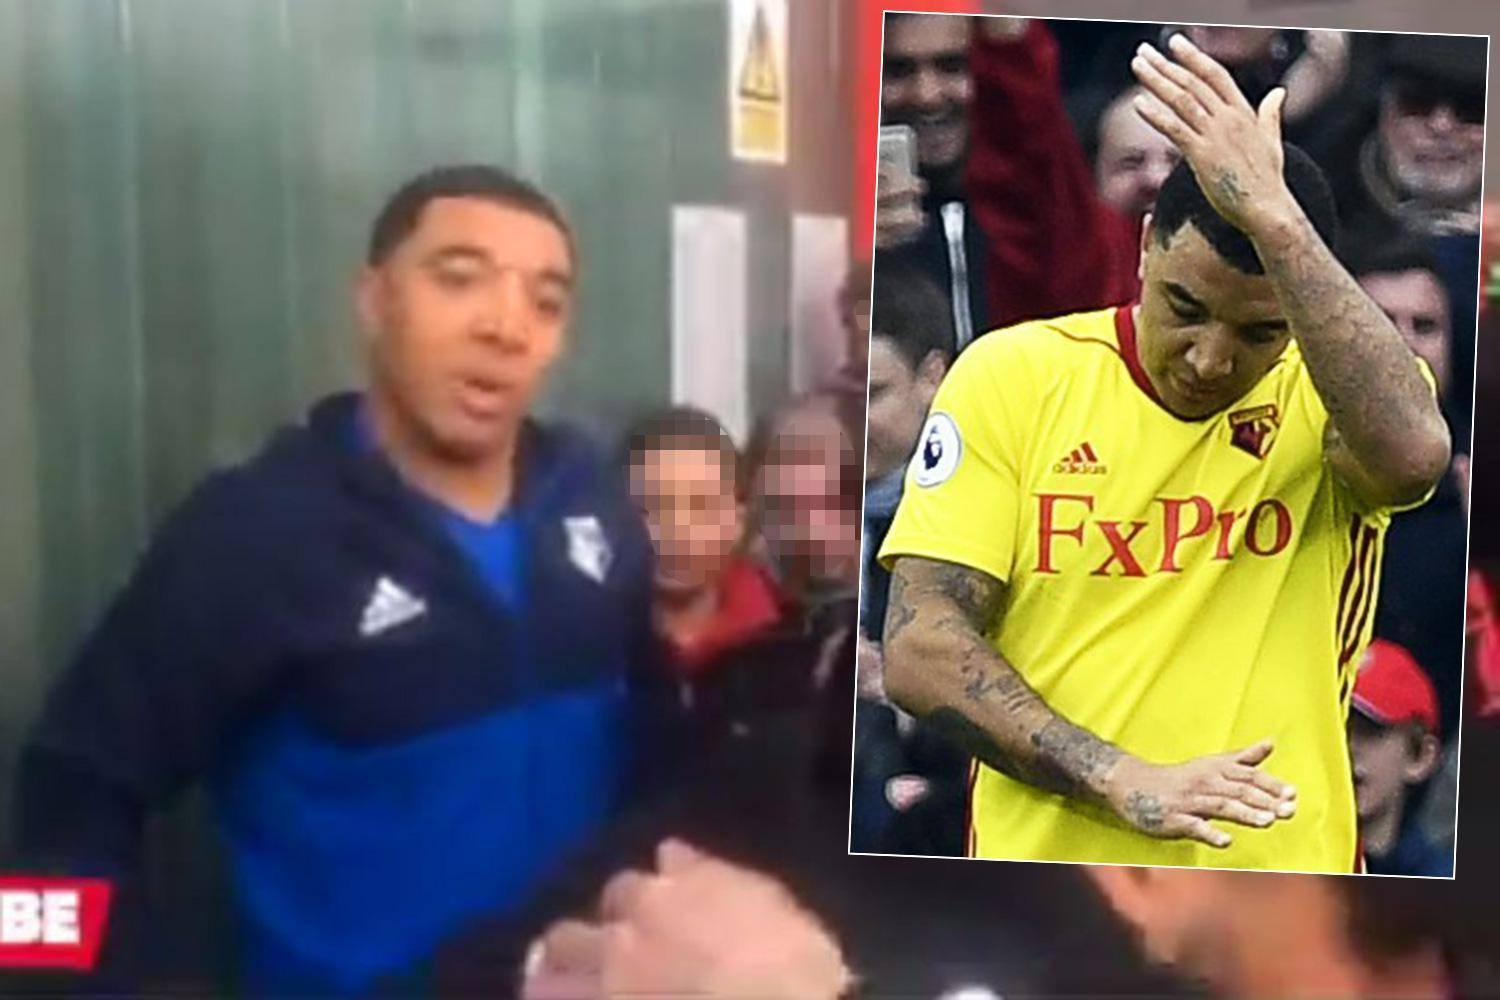 Troy Deeney tells Arsenal fan 'my cojones are as big as yours' after missing crucial penalty in Watford's defeat at the Emirates